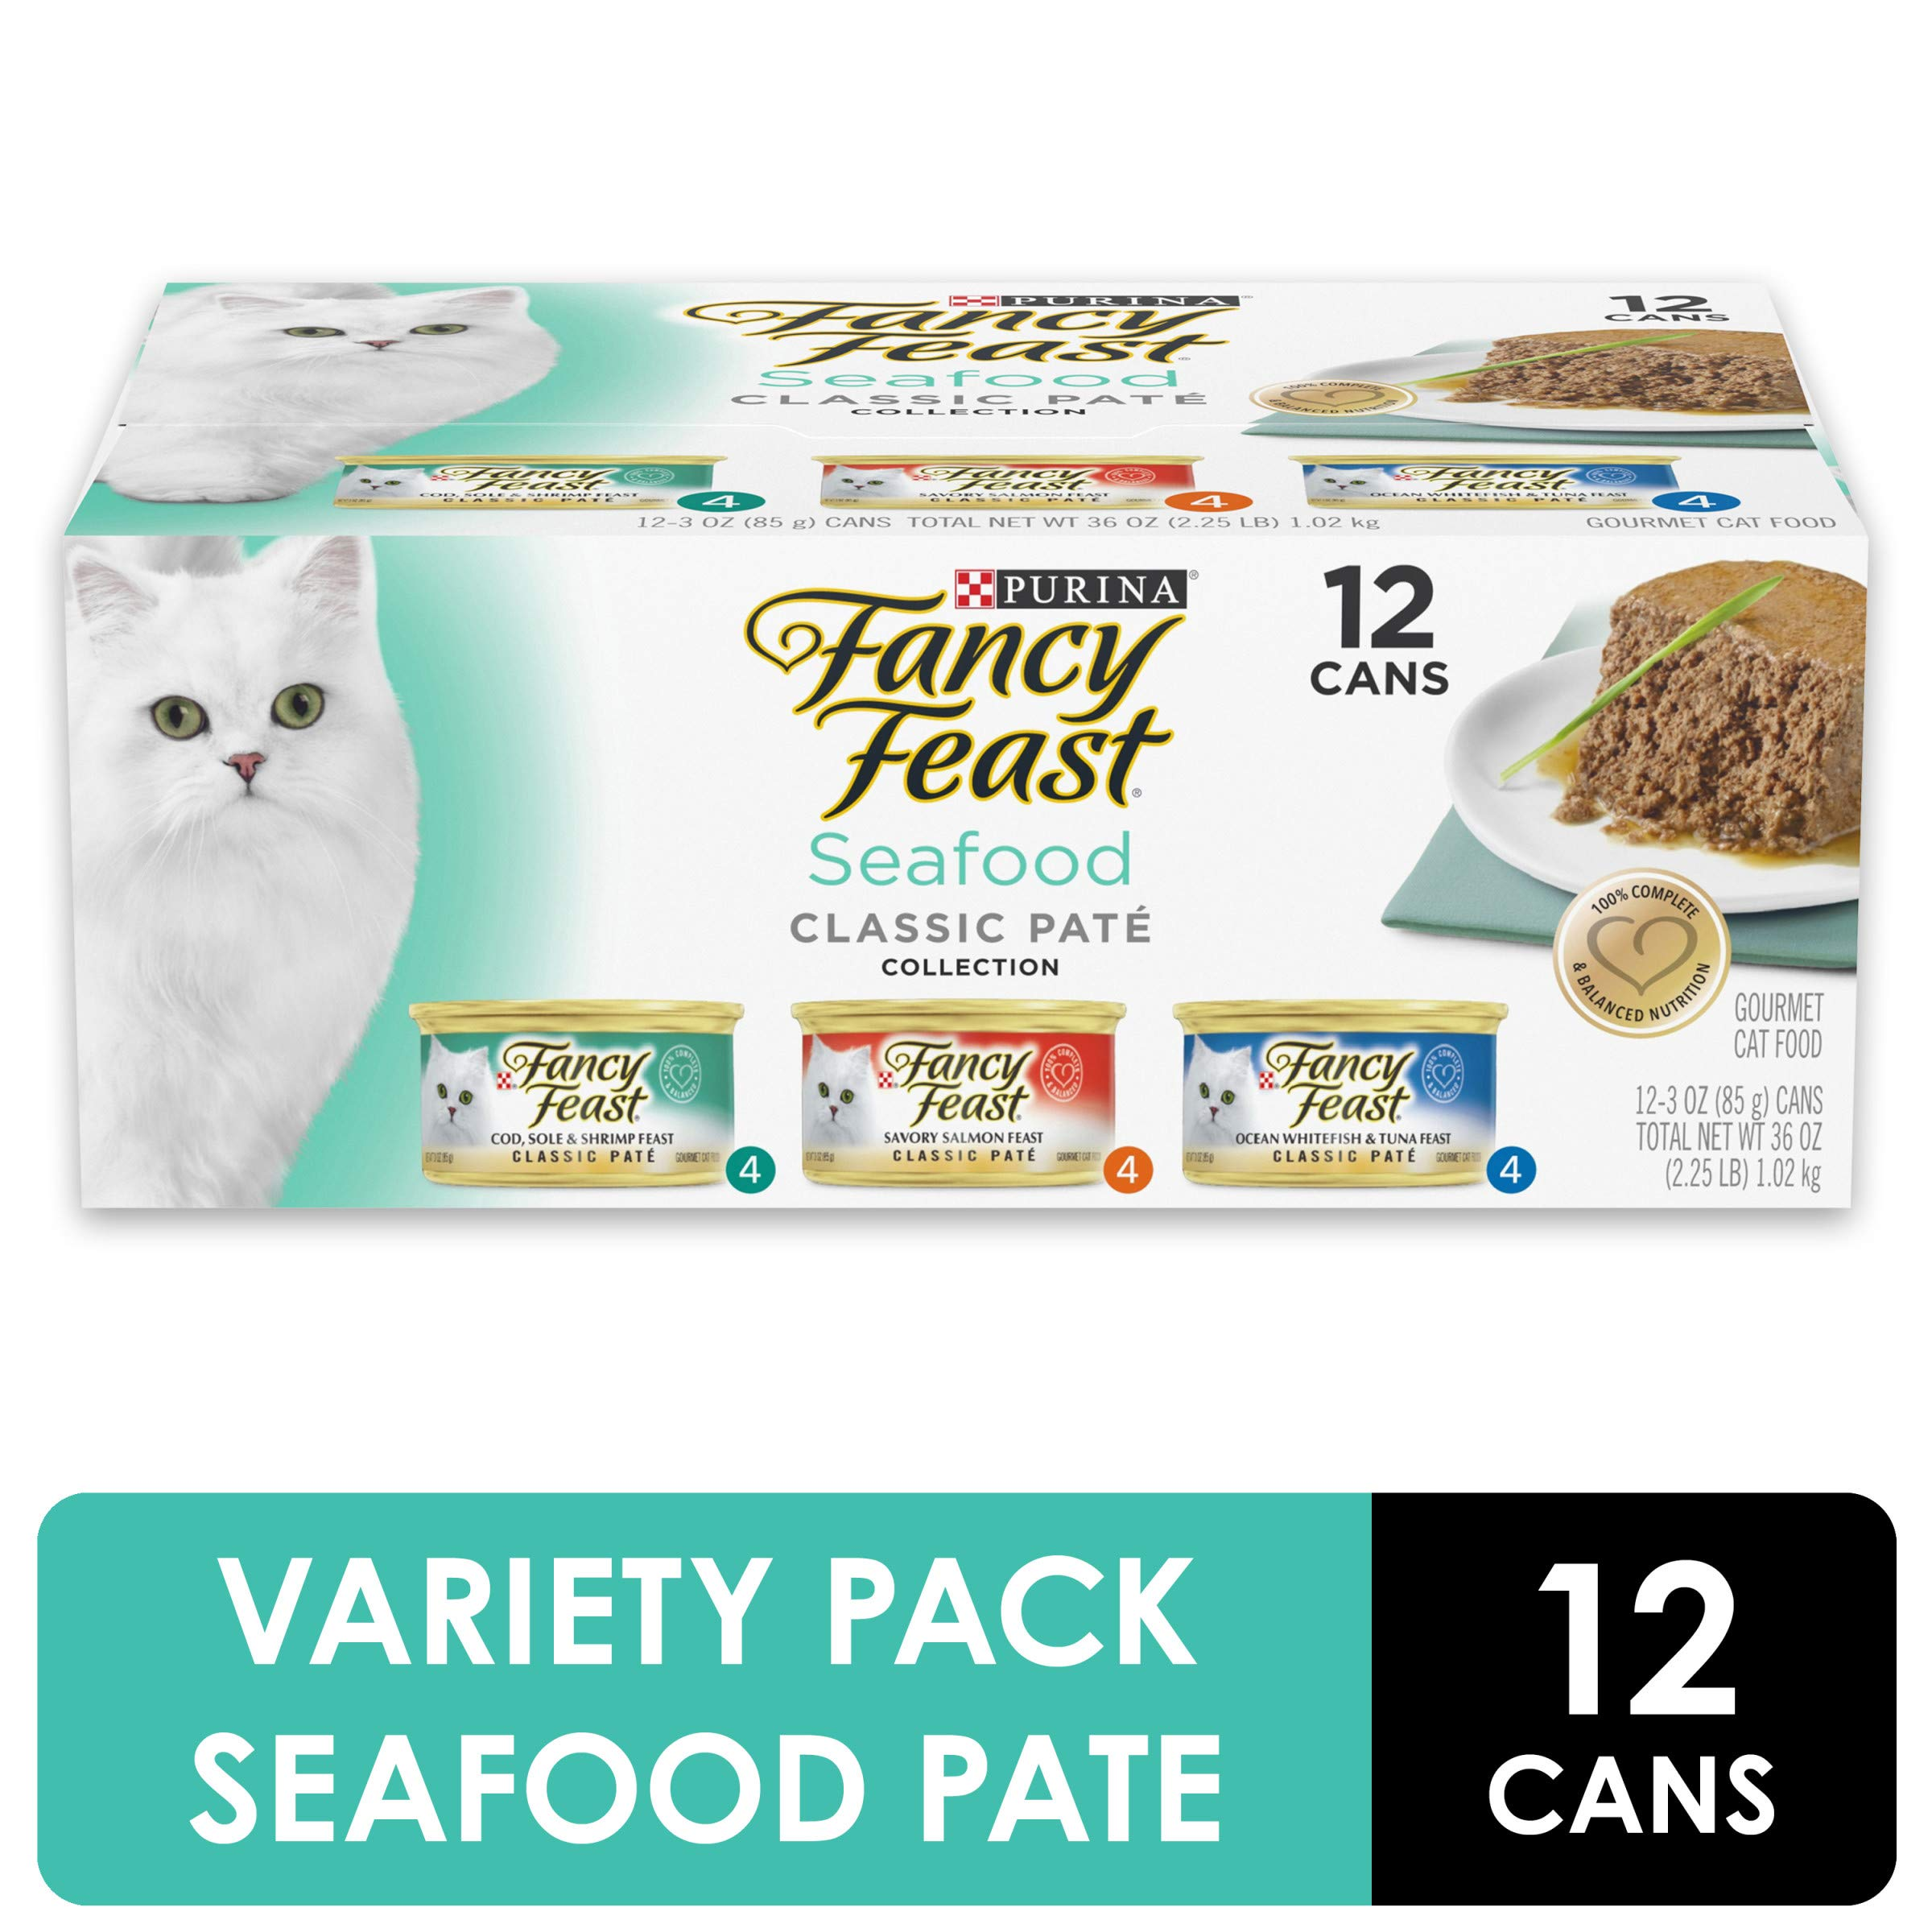 Purina Fancy Feast Grain Free Pate Wet Cat Food Variety Pack, Seafood Classic Pate Collection – (2 Packs of 12) 3 oz…